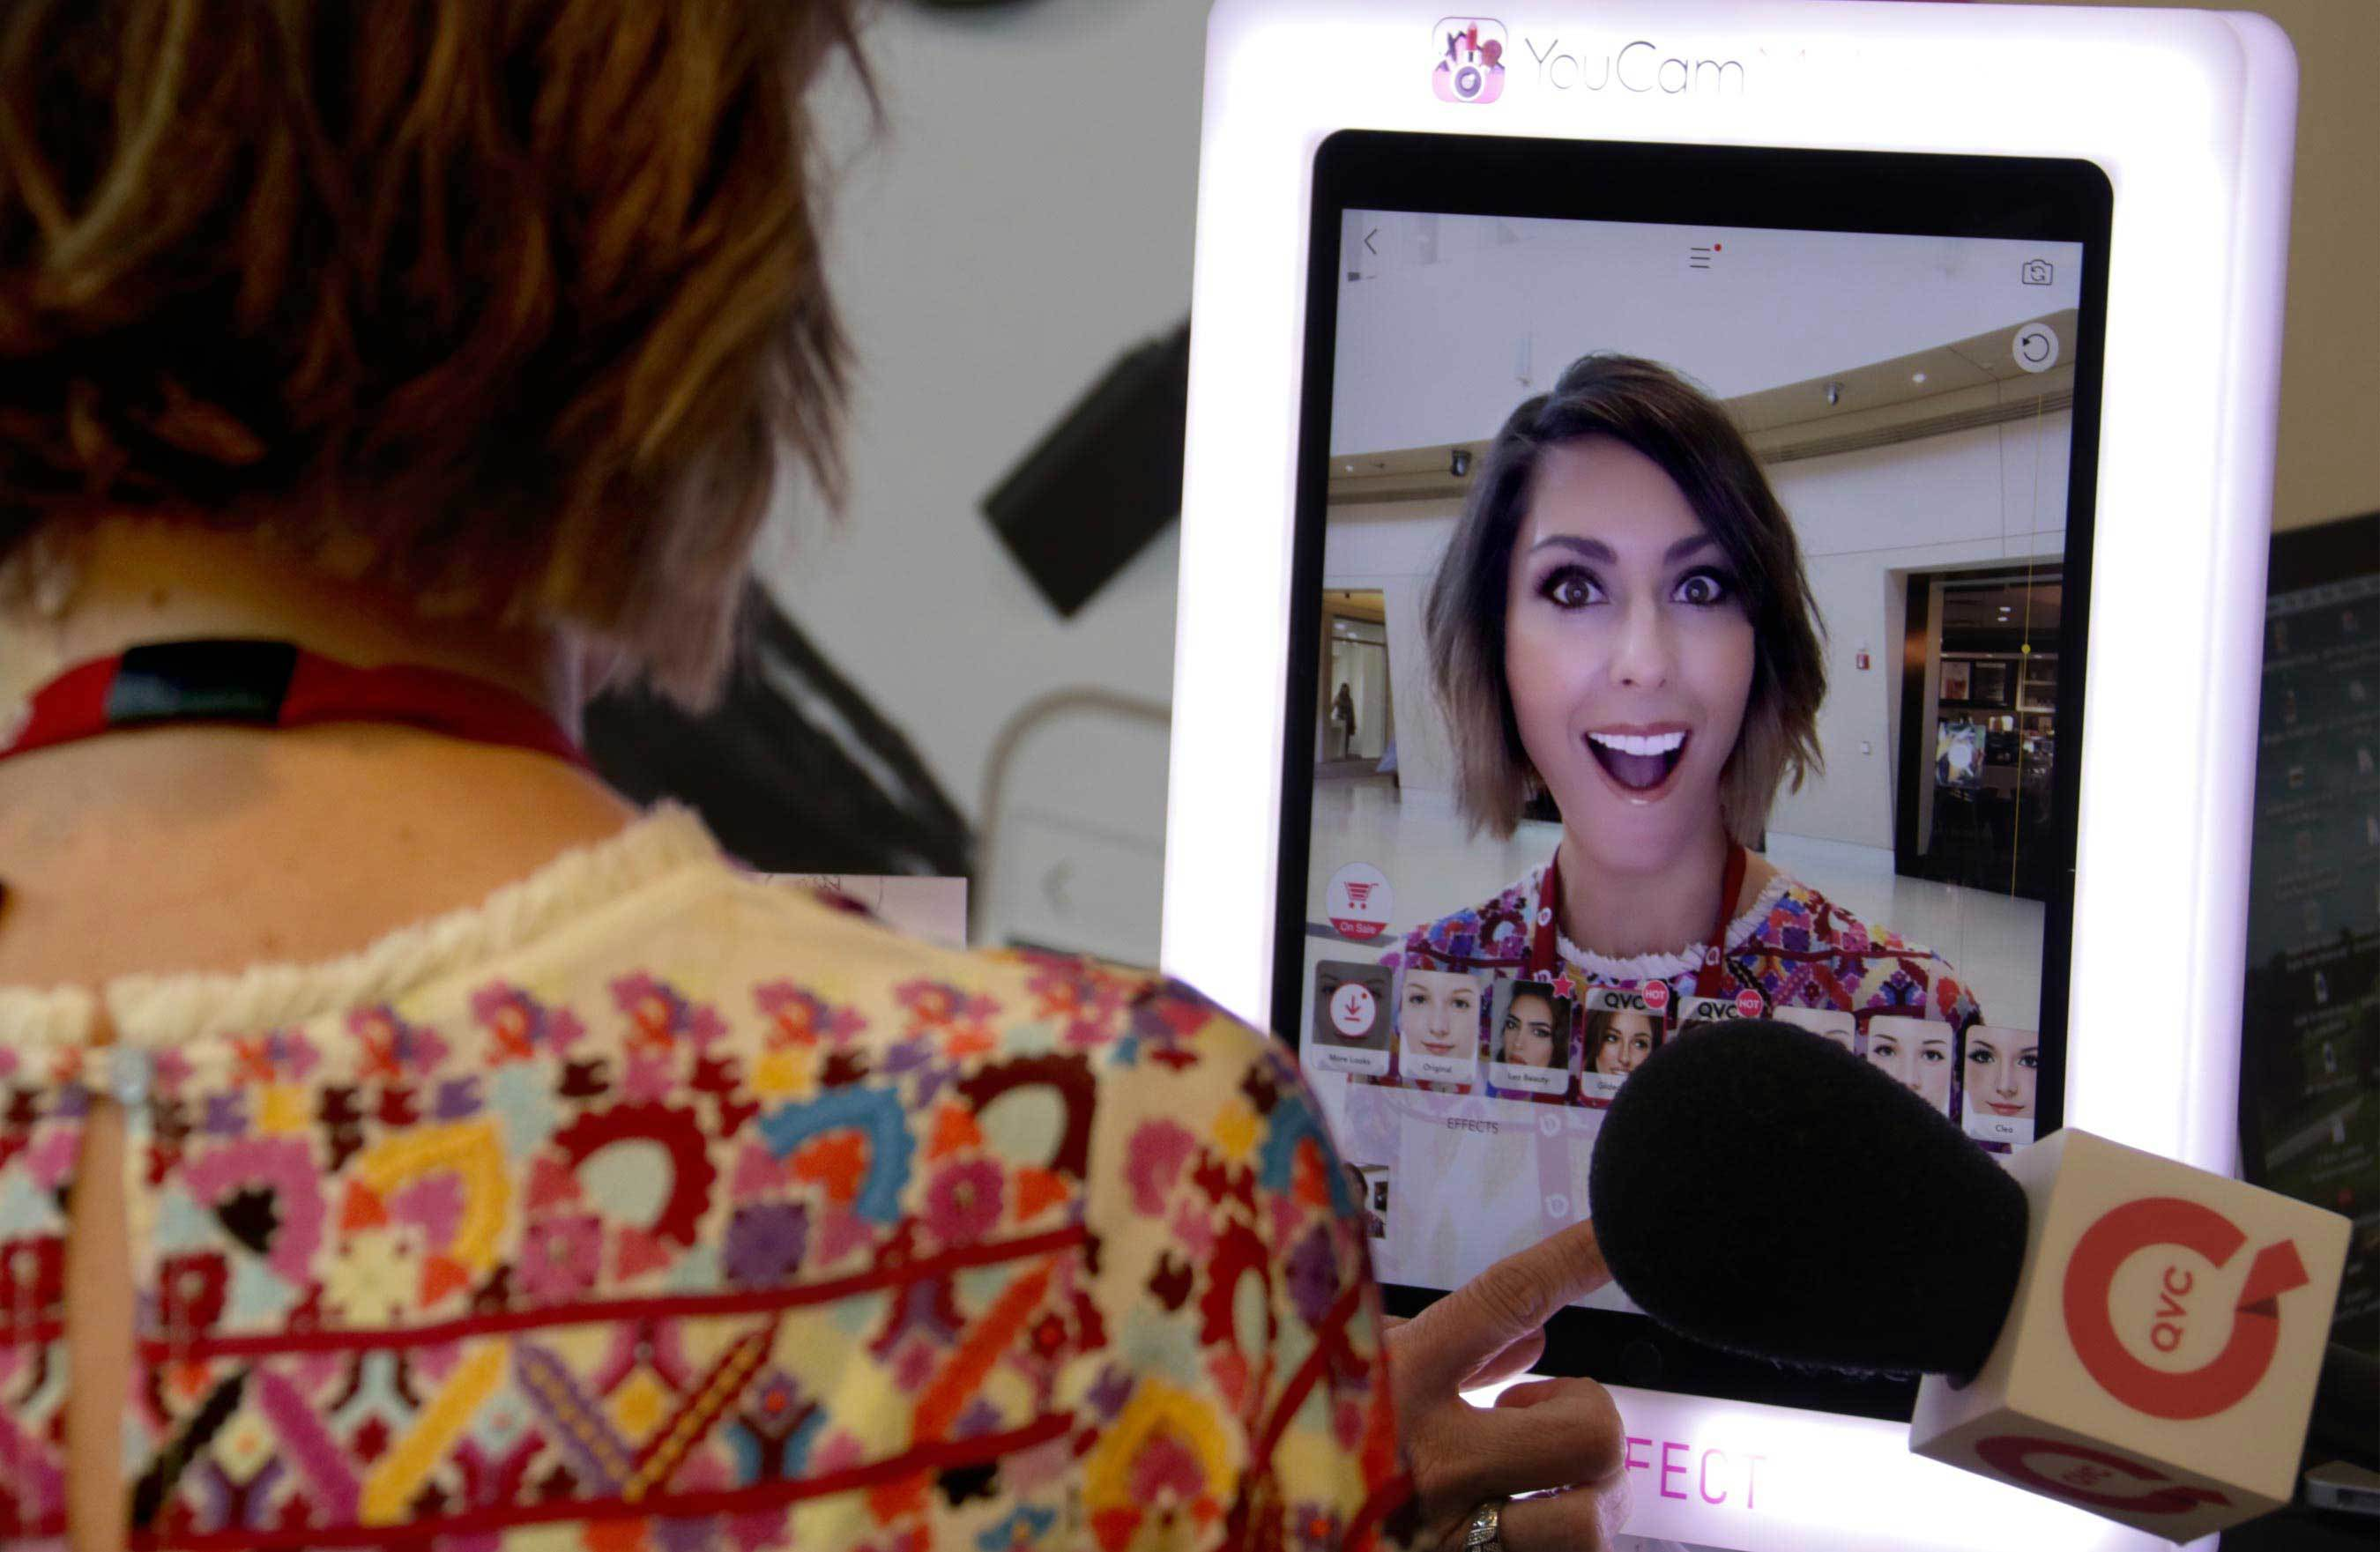 QVC´s Amy Stran looks marvelous, with whatever augmented reality-enhanced makeup she tries on.